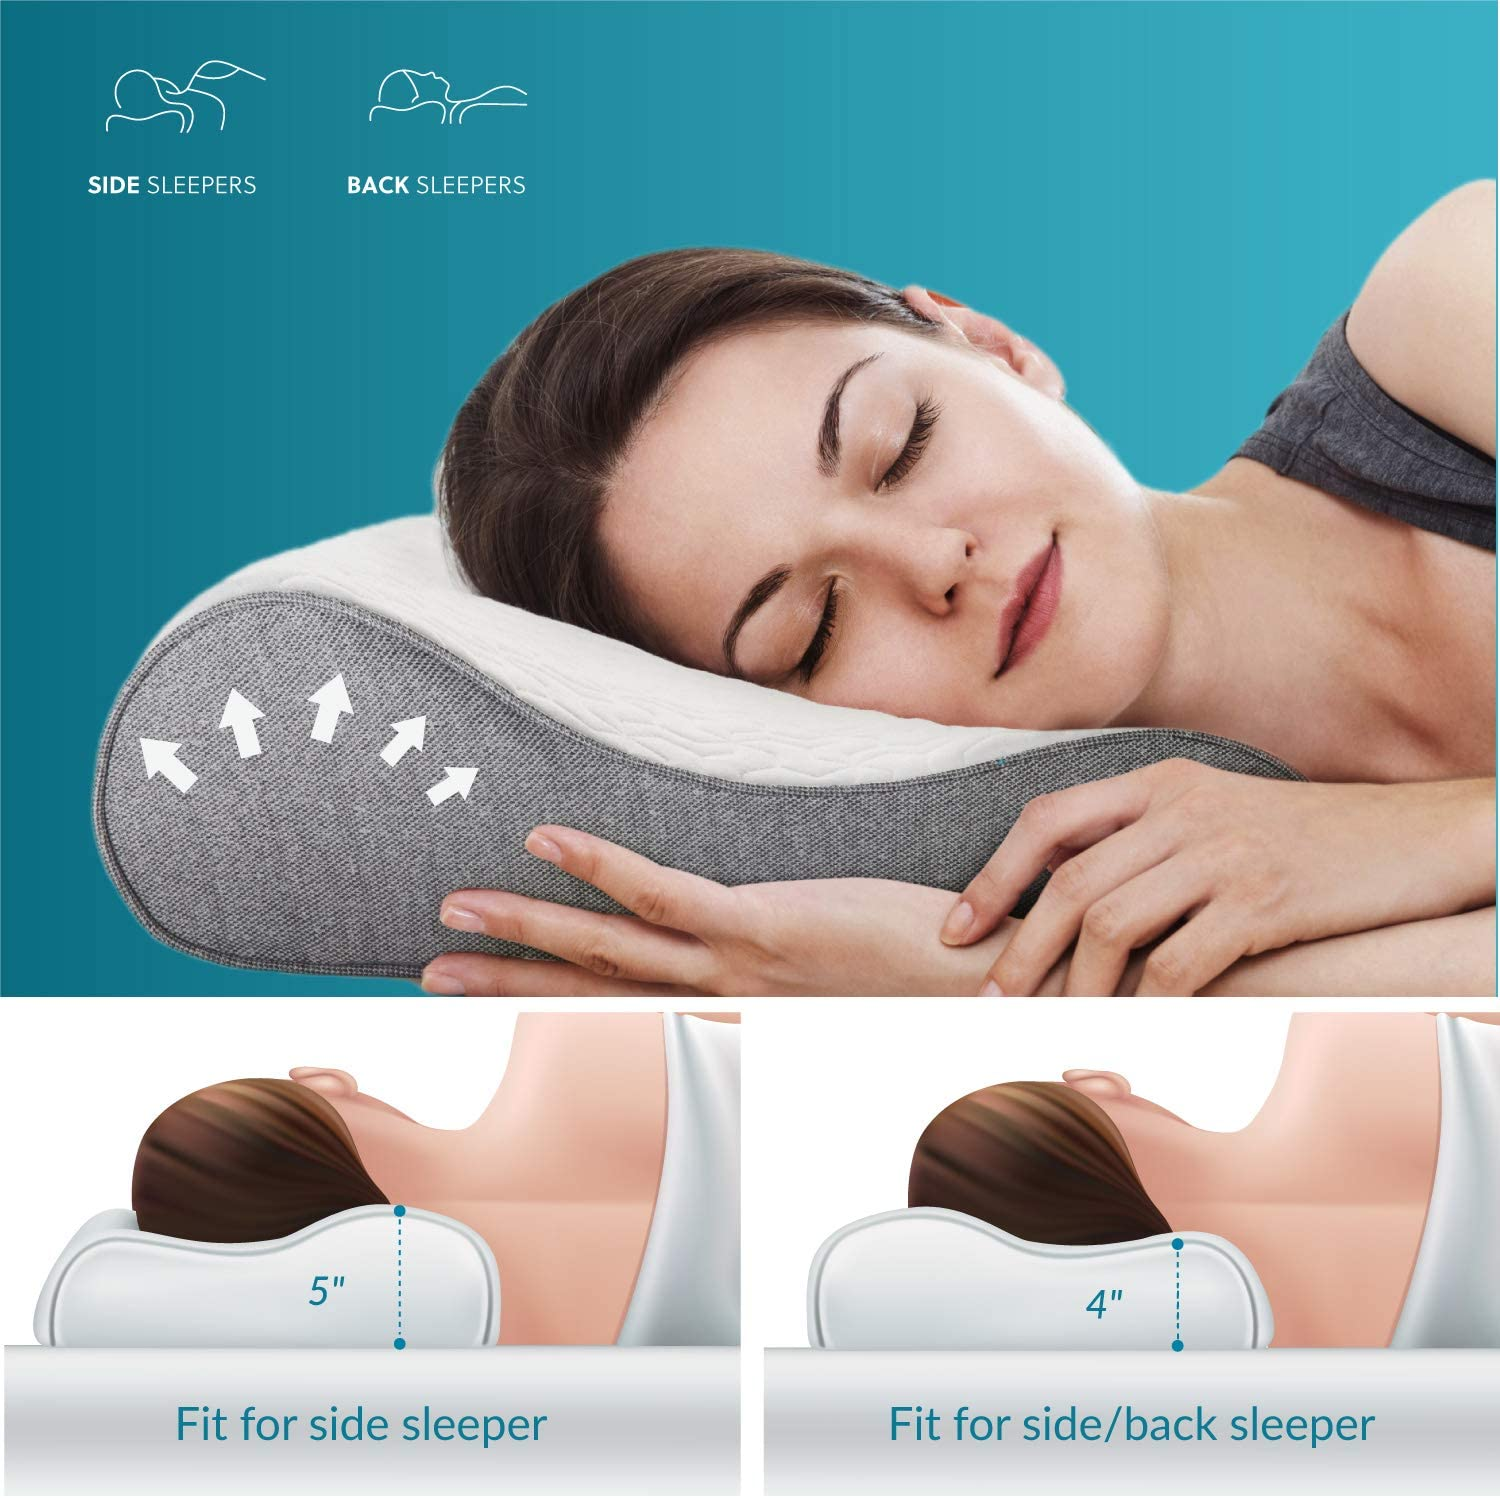 Bedsure Memory Foam Contour Pillow, Ergonomic Orthopedic Neck Support Firm Pillow, Cervical Pillow for Neck Pain, for Sleeping, Washable Pillowcase Included - Standard Size: Home & Kitchen